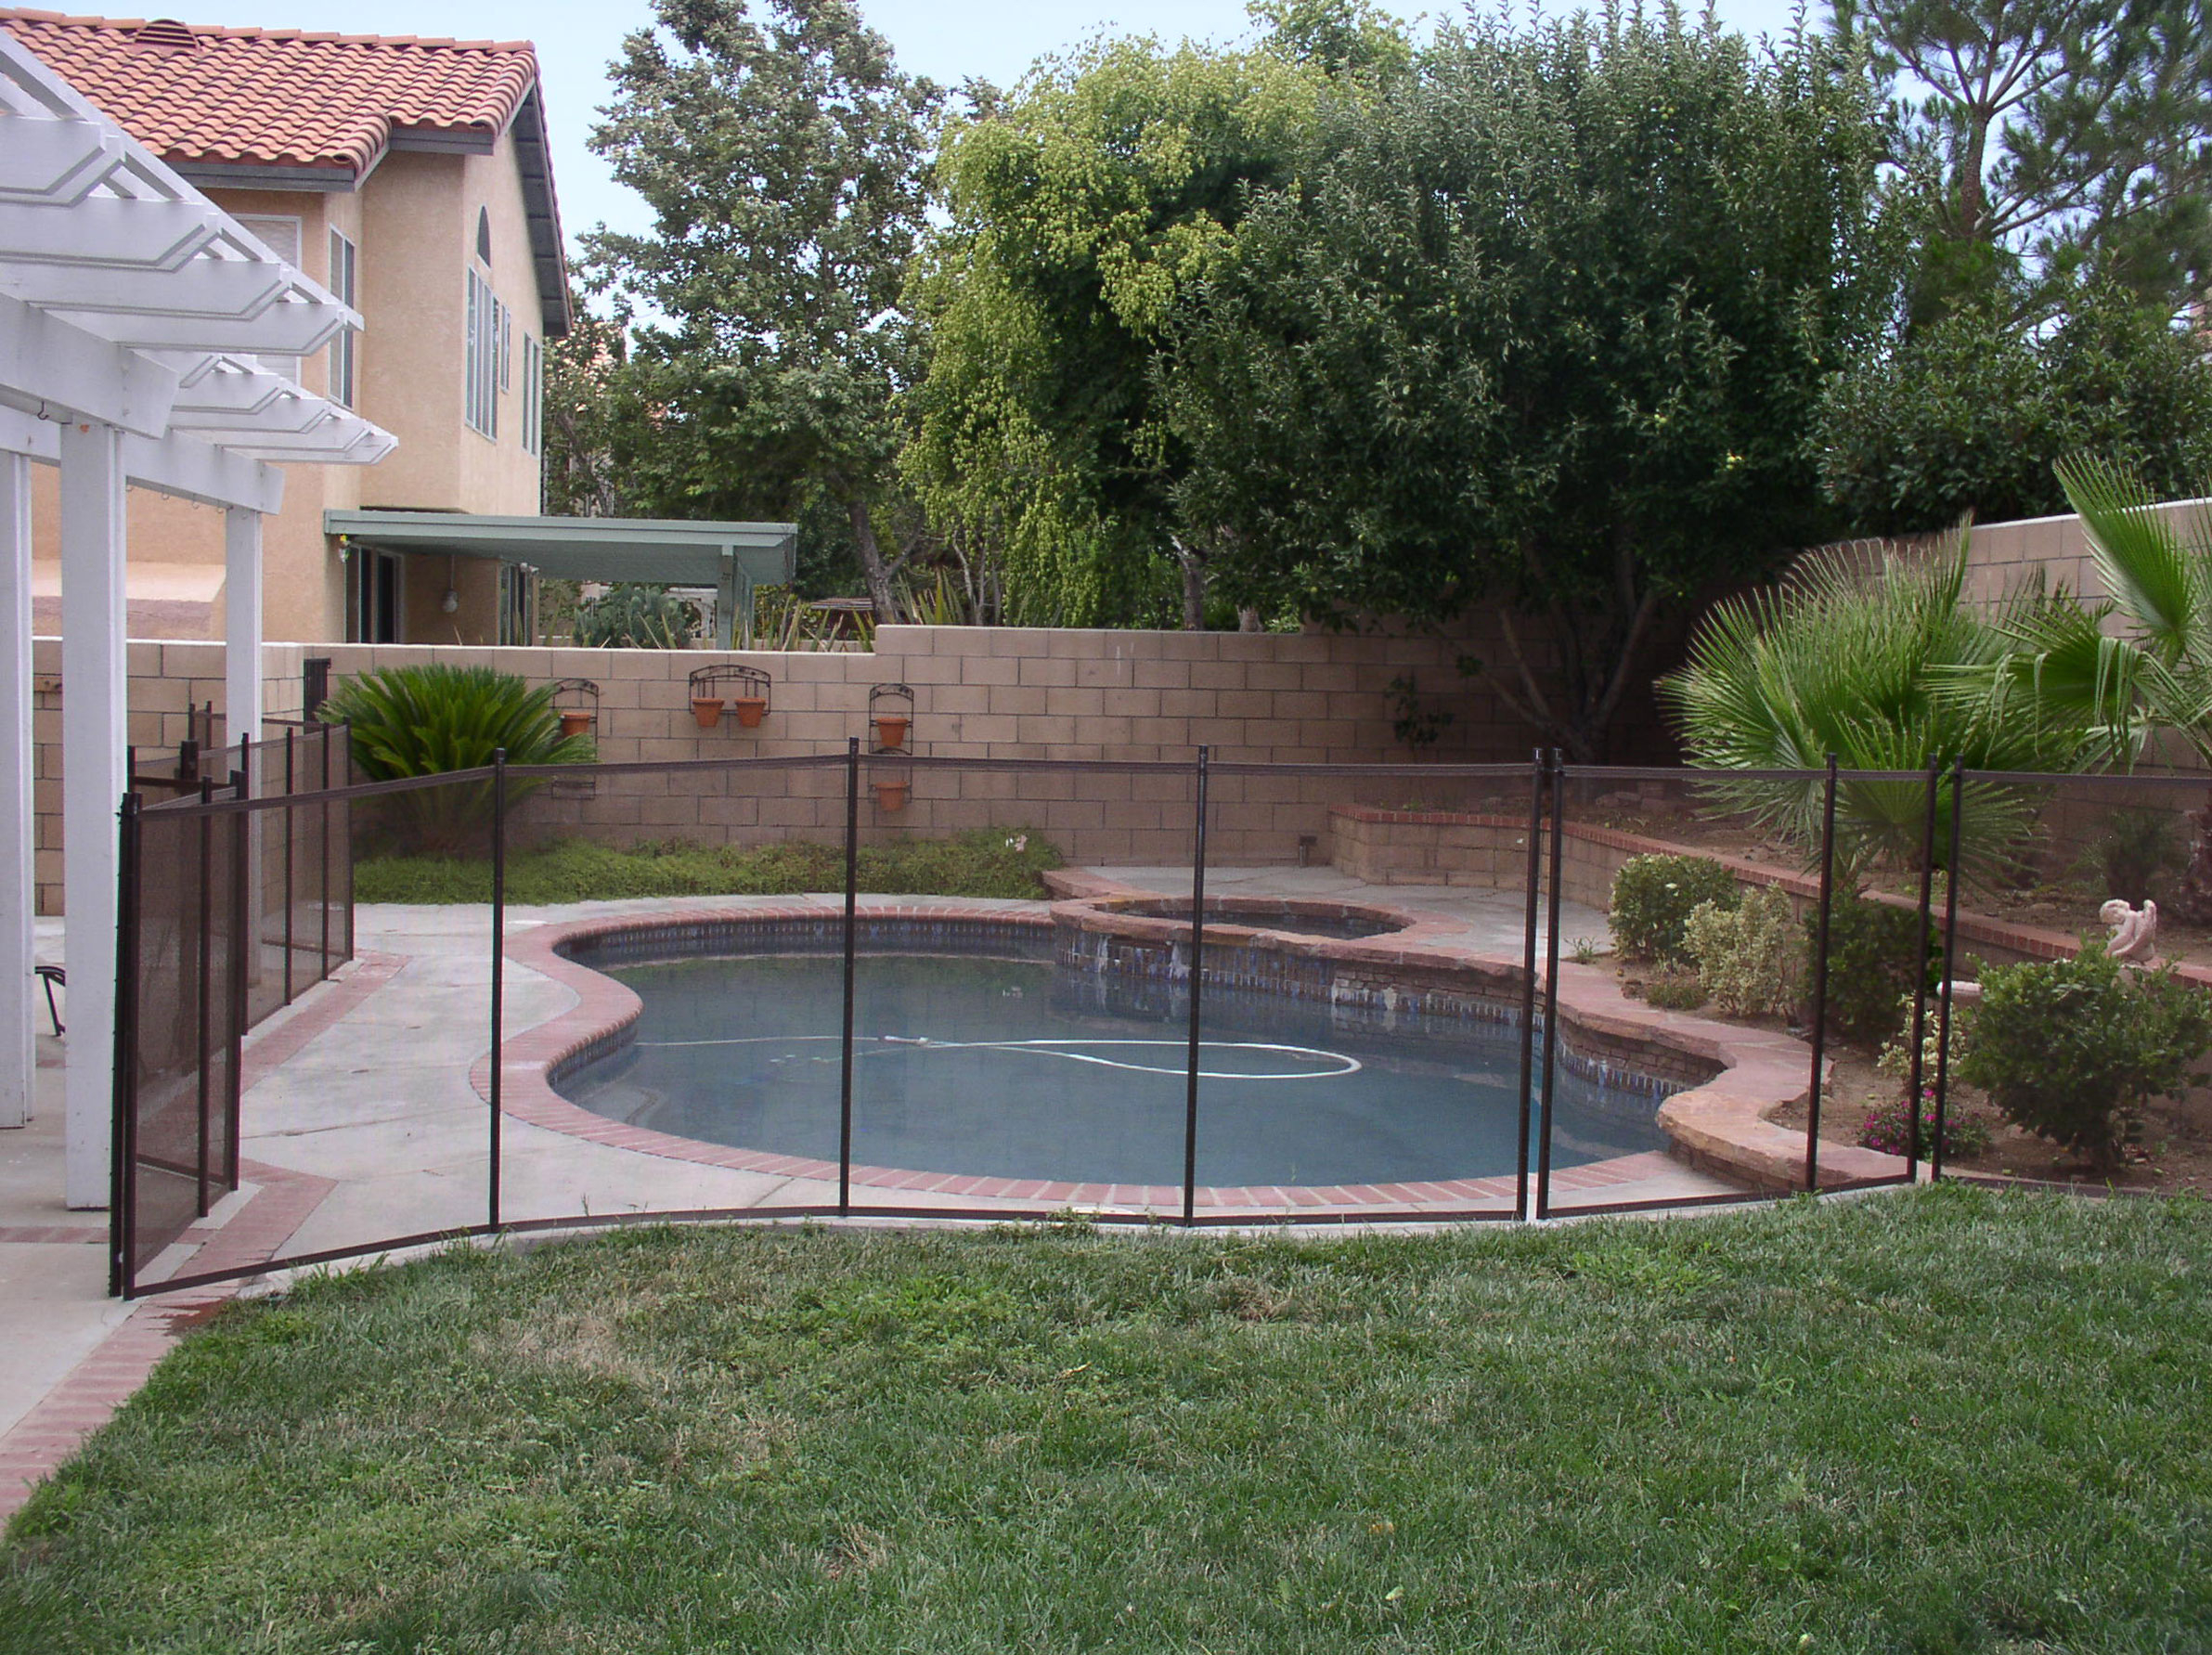 Pool Fence Ideas The New Way Home Decor Impressive Fencing Ideas throughout Backyard Pool Fence Ideas